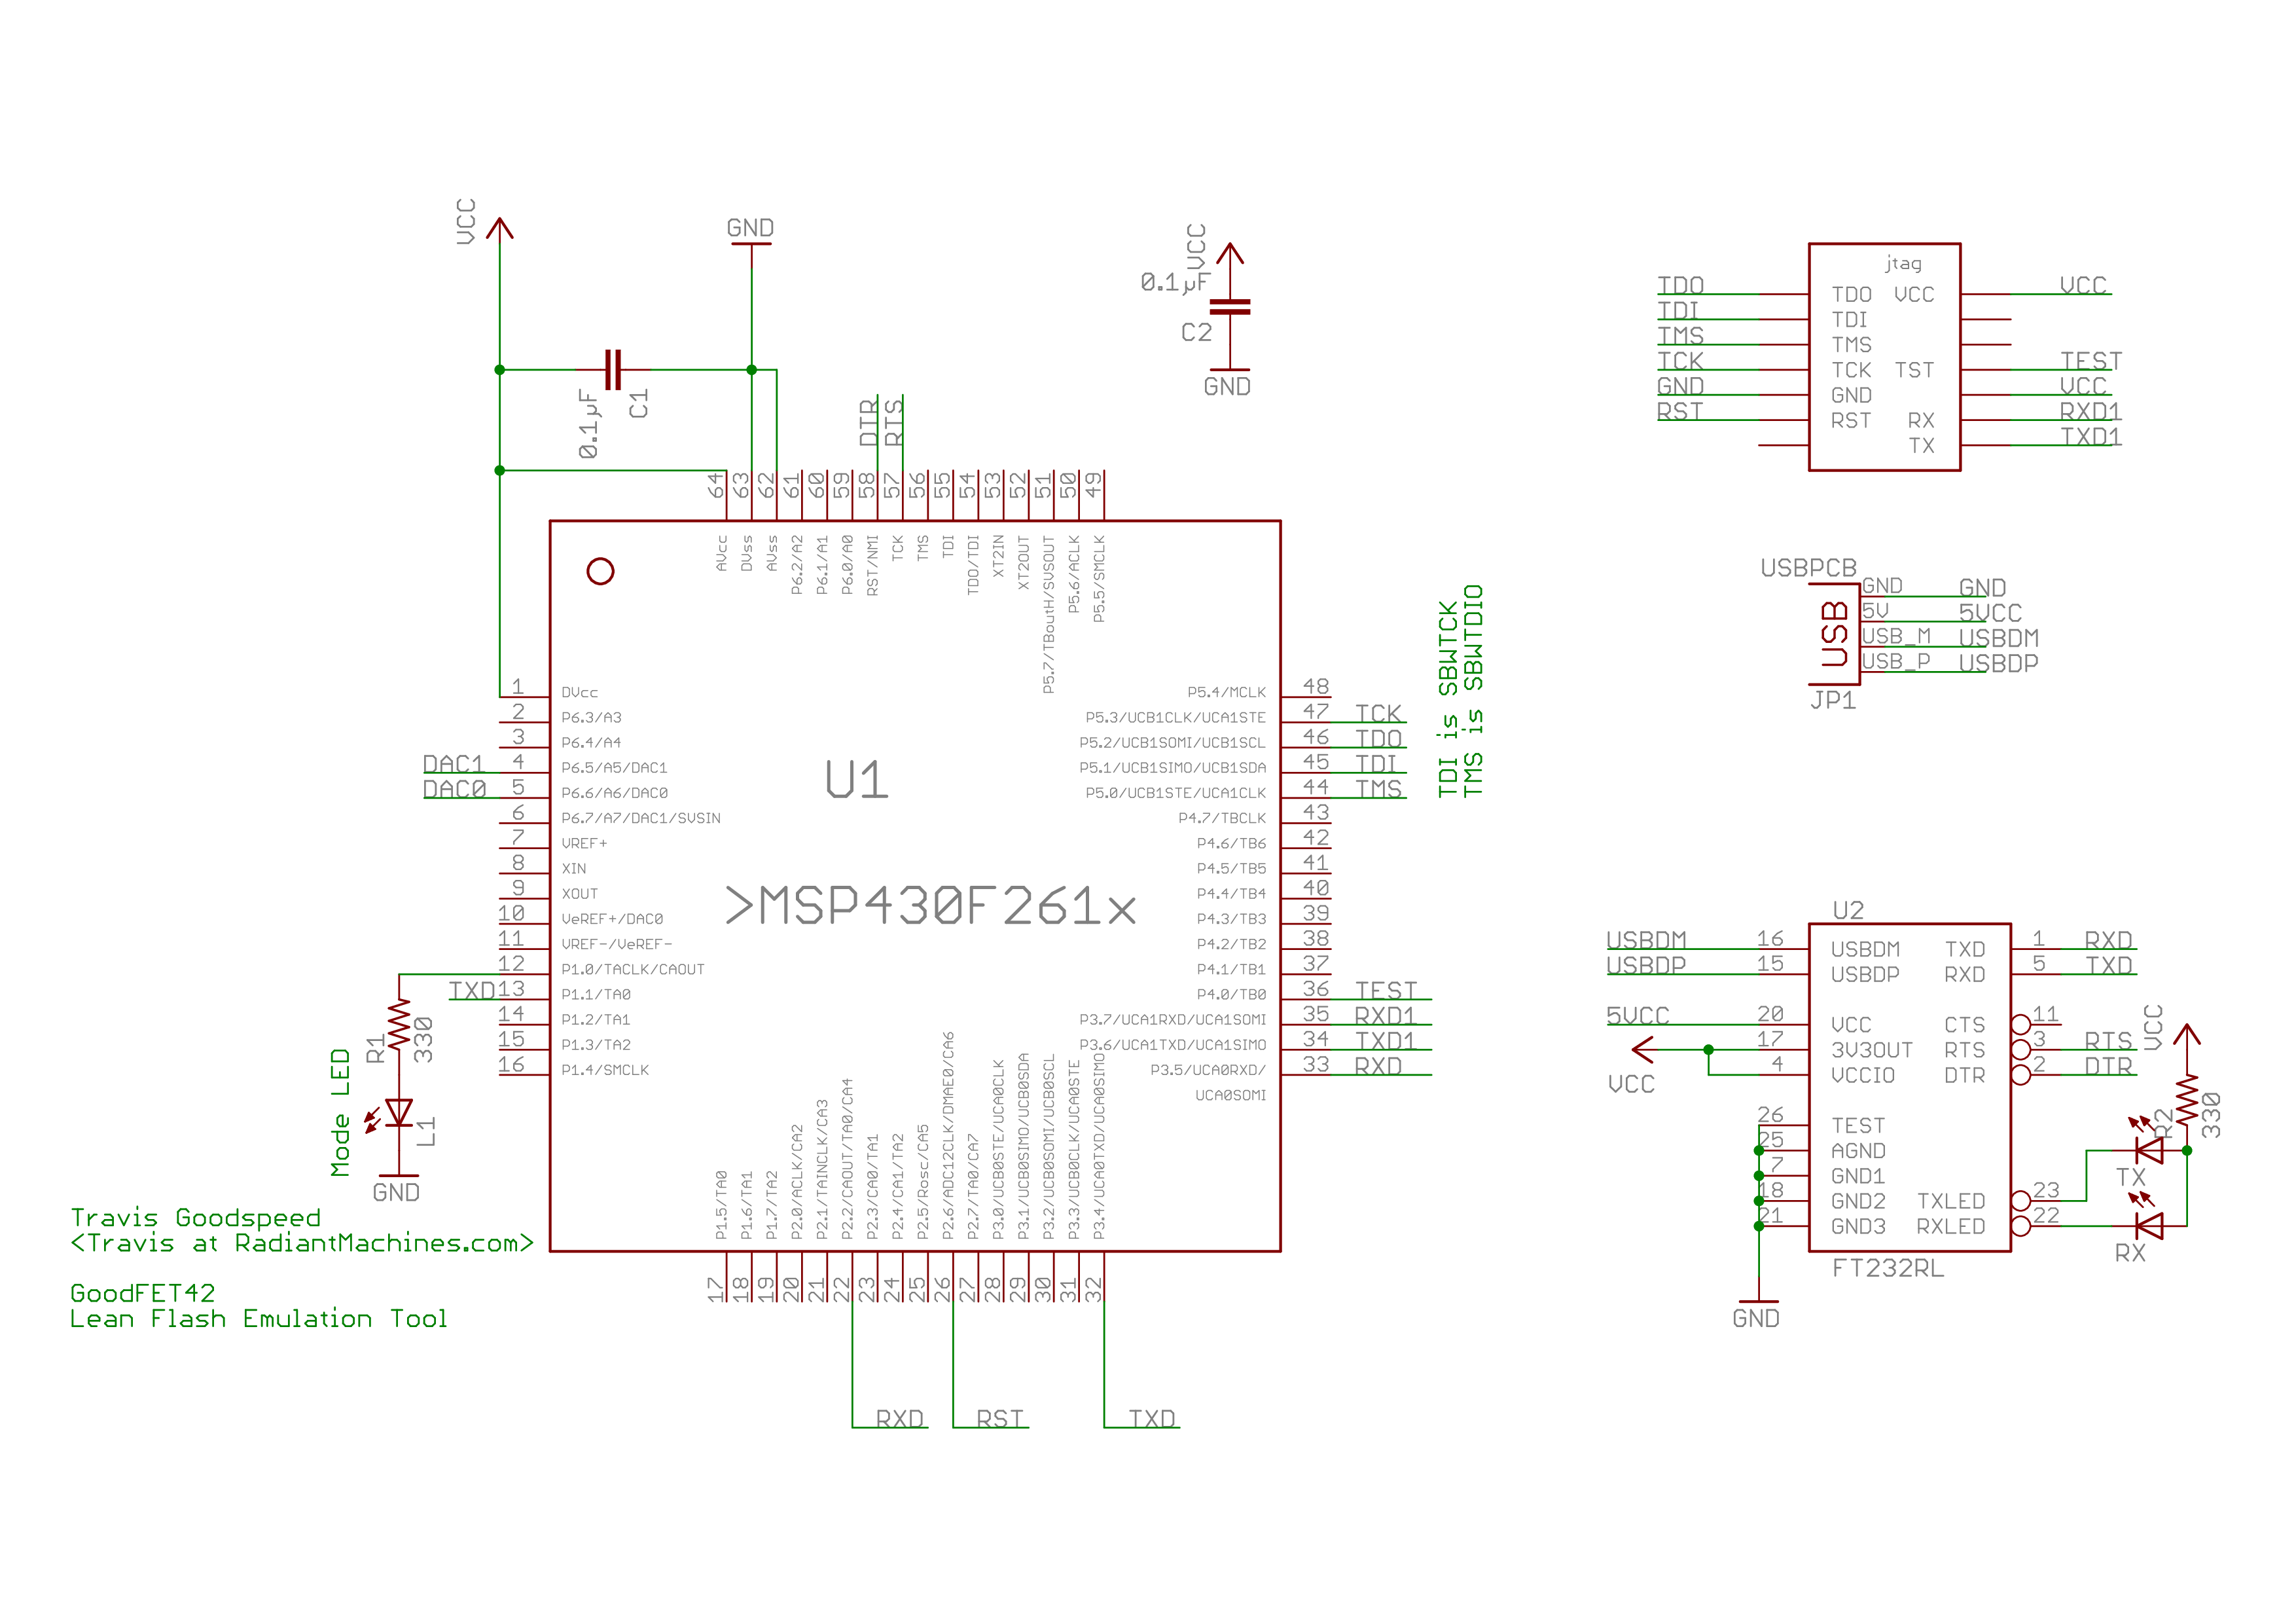 Goodfet Pscholl Wsnlab Wiki Github Ftdi Cable Schematic The Labelschematic